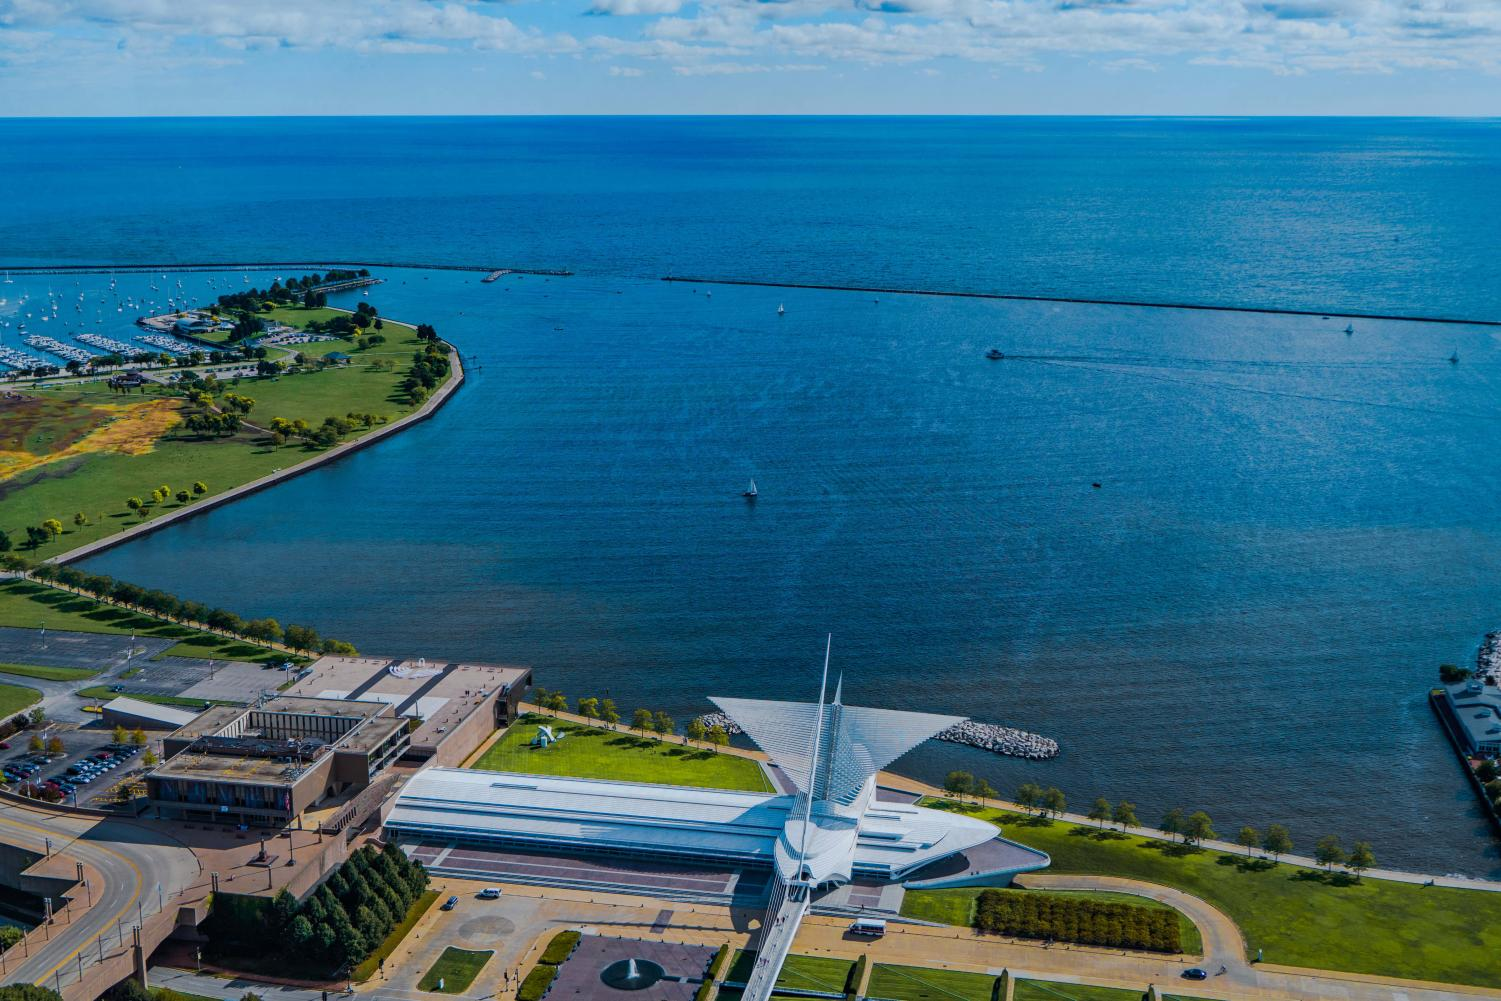 Lake Michigan is the source of our water and where we put our waste.